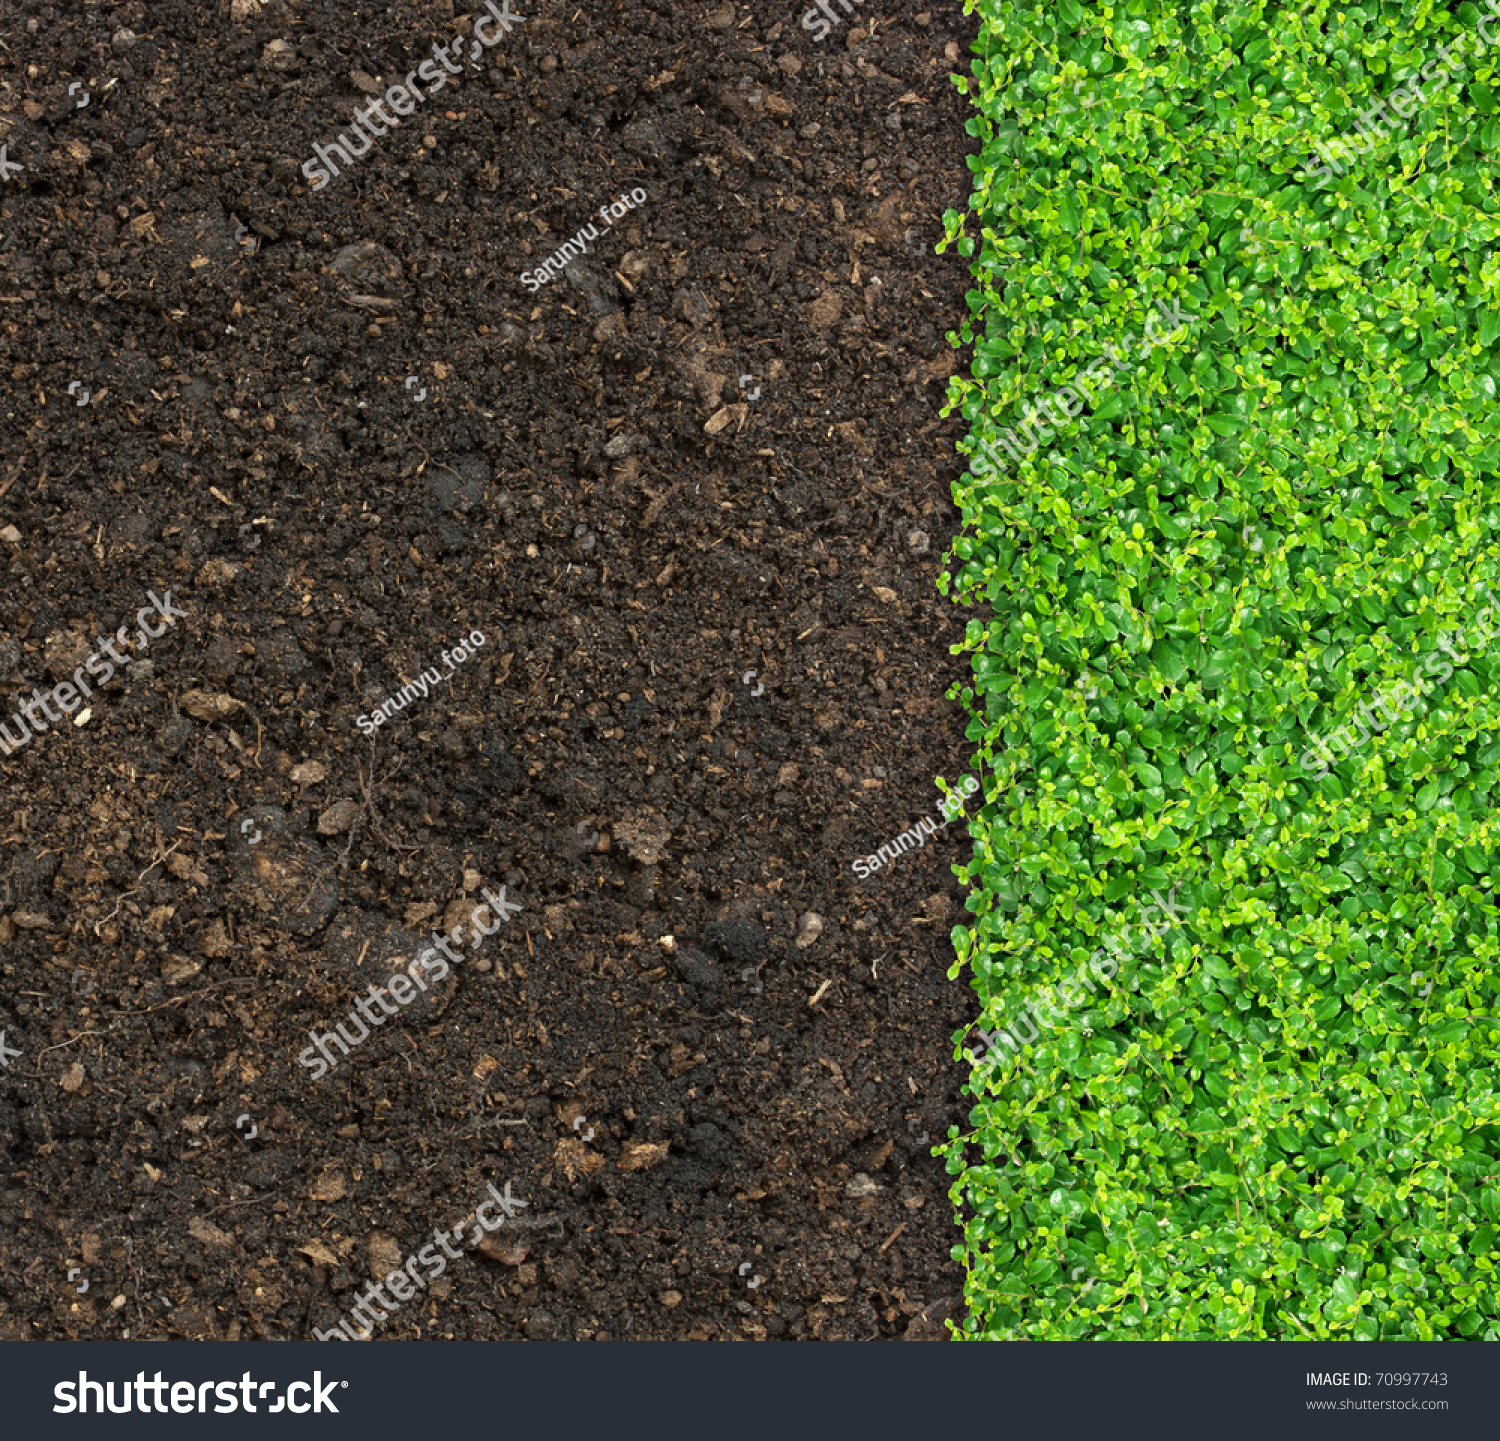 Grass and green plants growing on soil manure stock photo for Soil and green